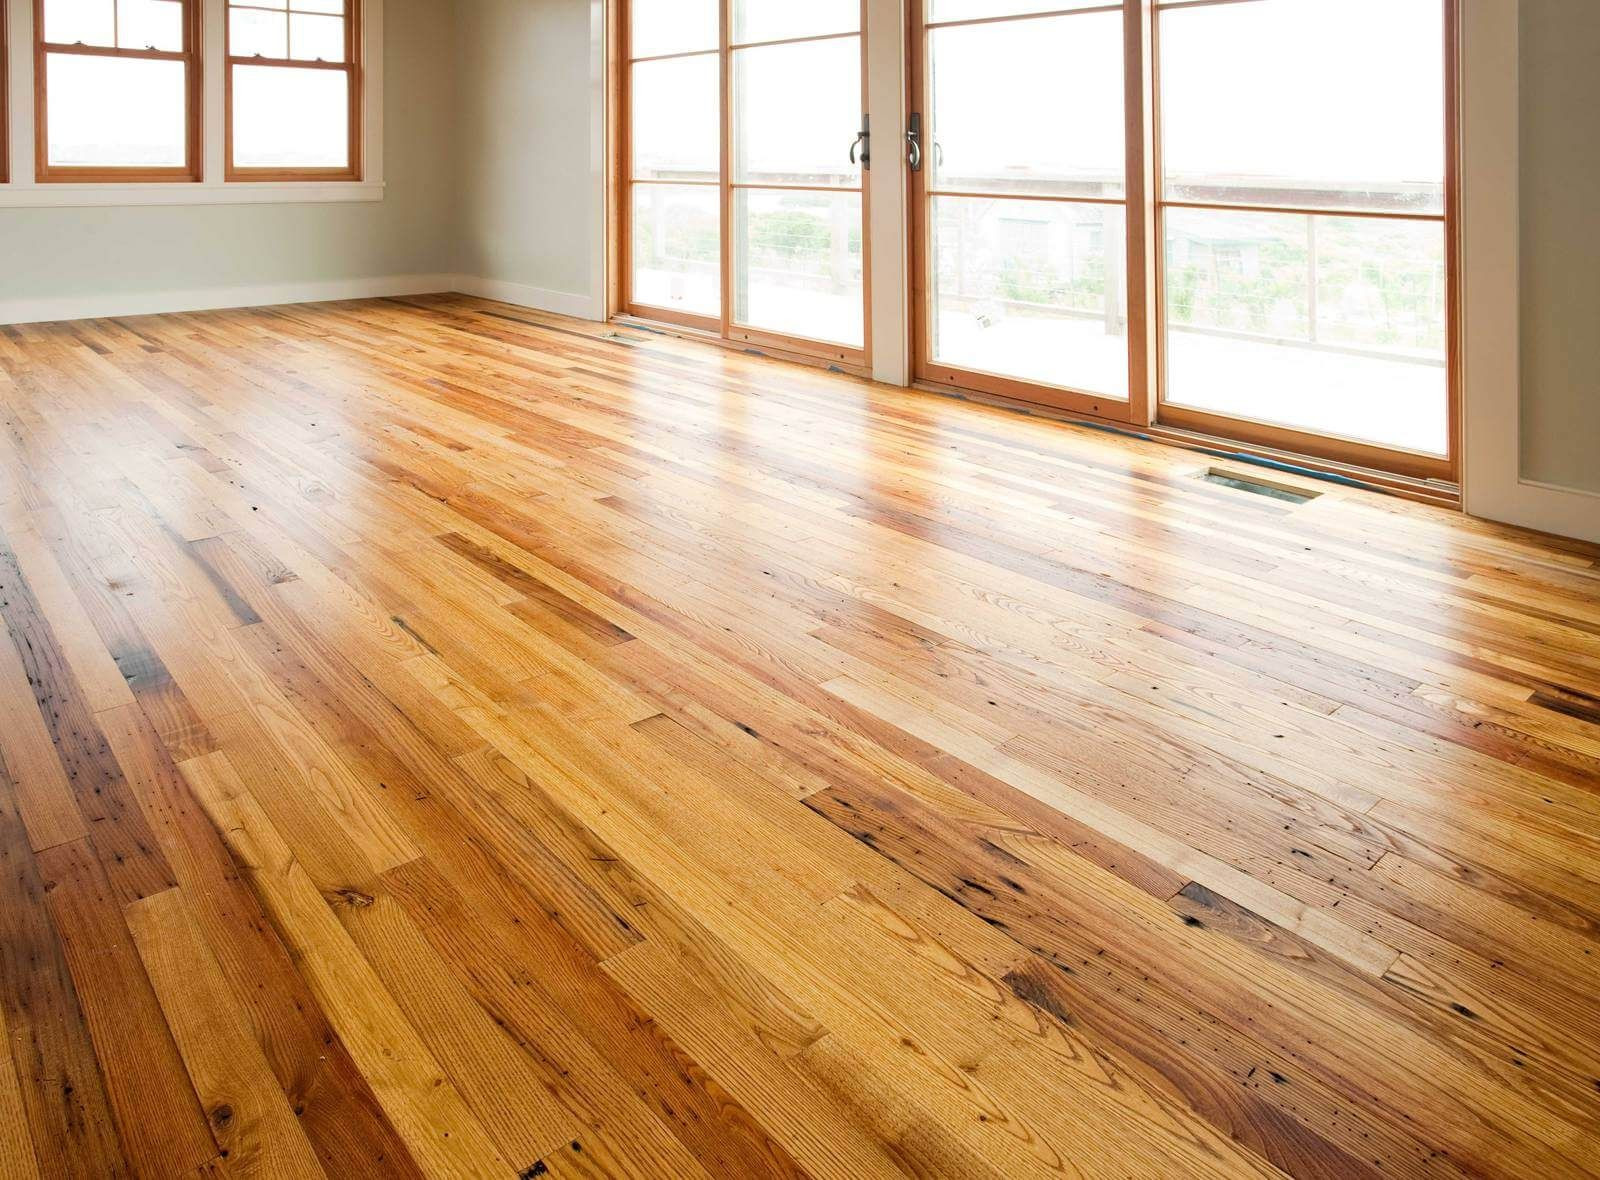 Dd Hardwood Flooring Of 13 Best Random Width Floors Images On Pinterest Sweet Home In 13 Best Random Width Floors Images On Pinterest Sweet Home Flooring and Home Decor